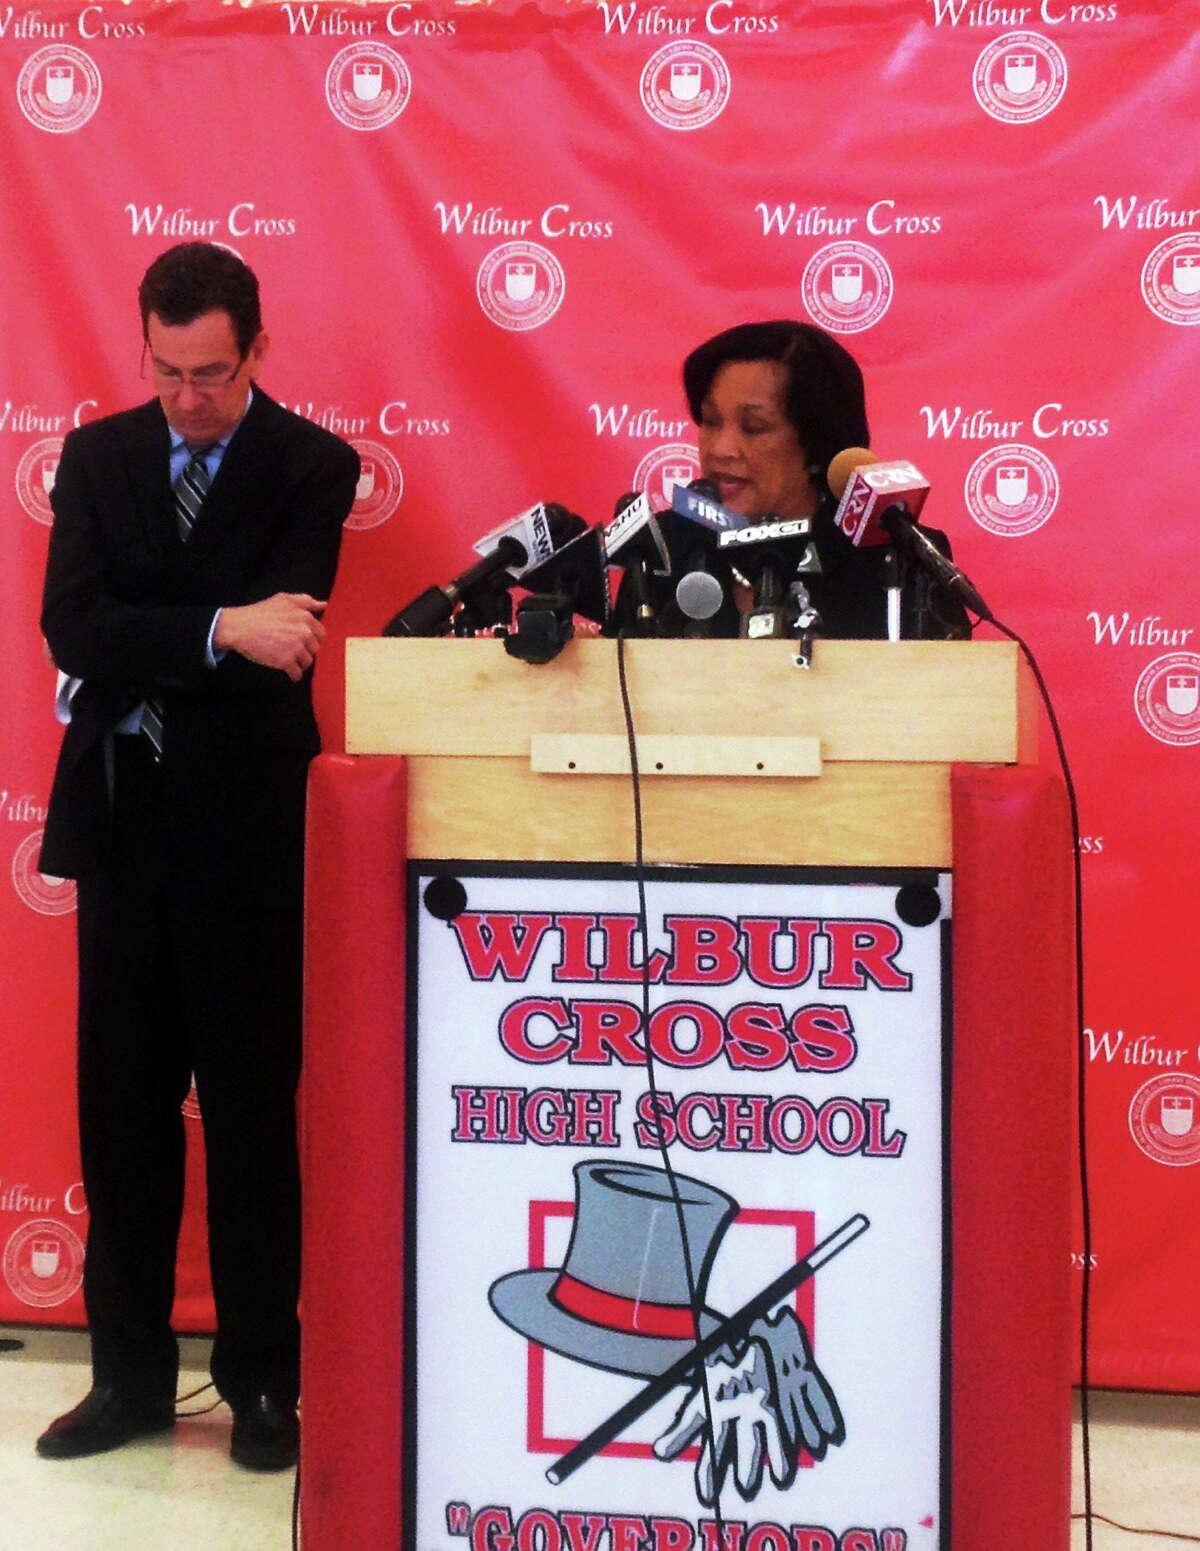 (Rachel Chinapen- New Haven Register) New Haven Mayor Toni Harp speaks at Wilbur Cross High School. Gov. Dannel Malloy is at left.